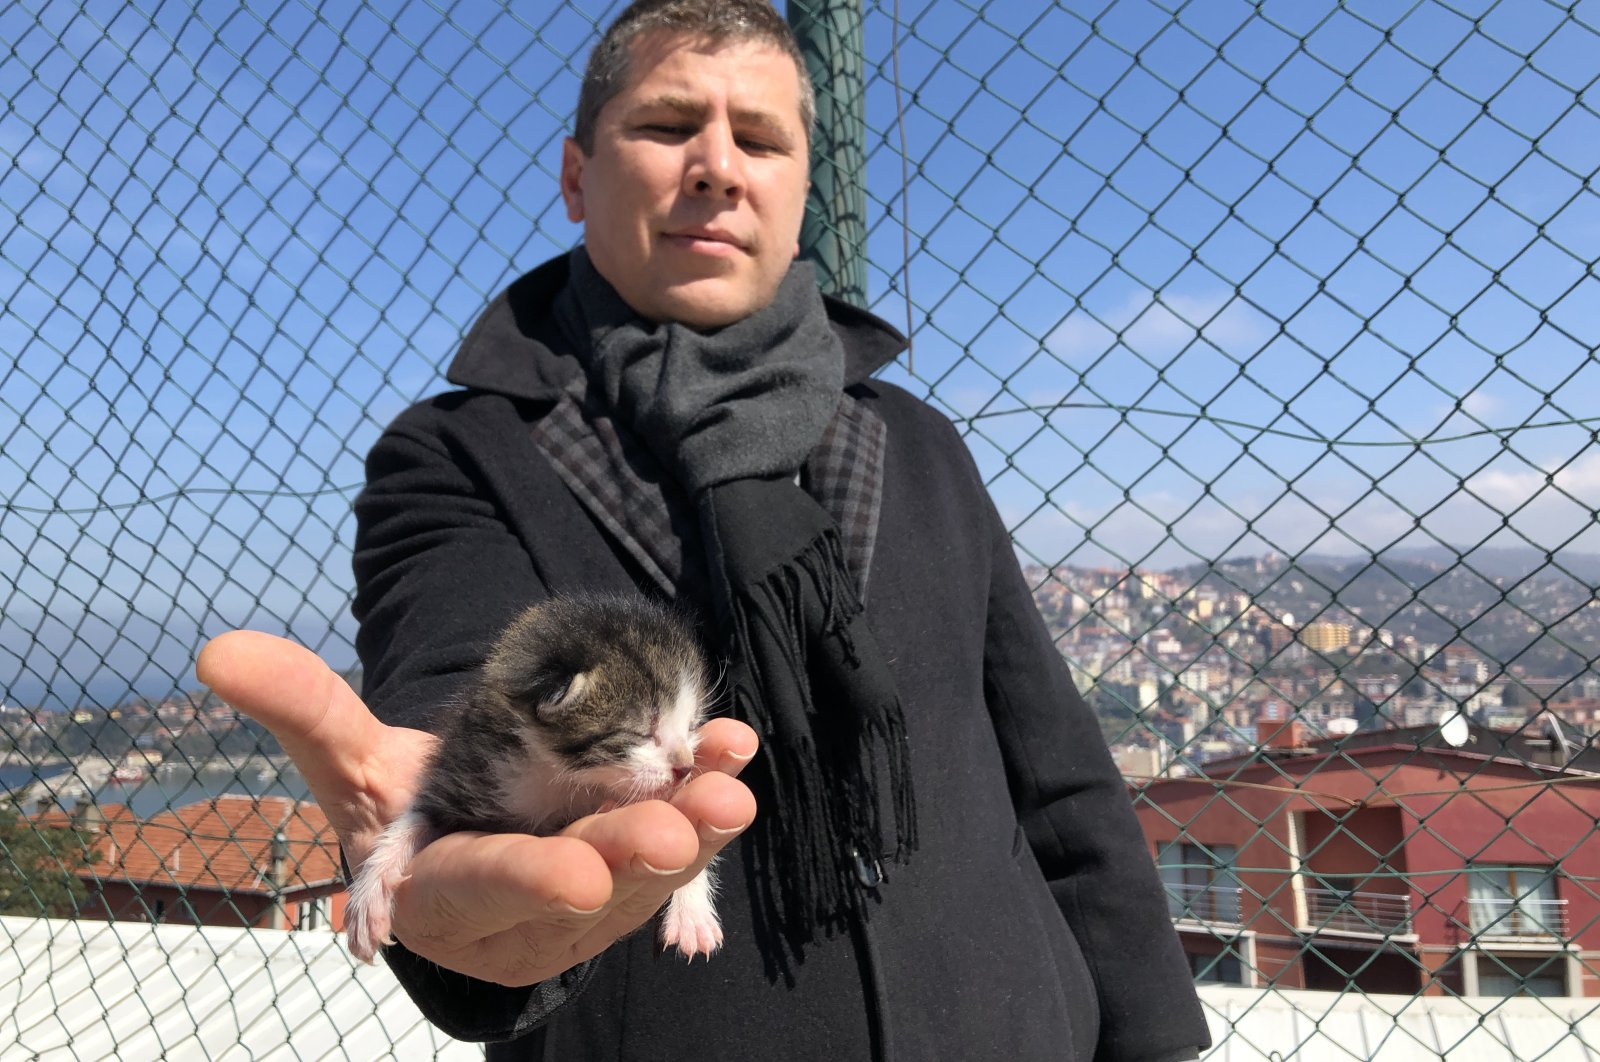 Gonca holds the kitten whom he administers CPR to revive, in Zonguldak, on March 21. (DHA Photo)